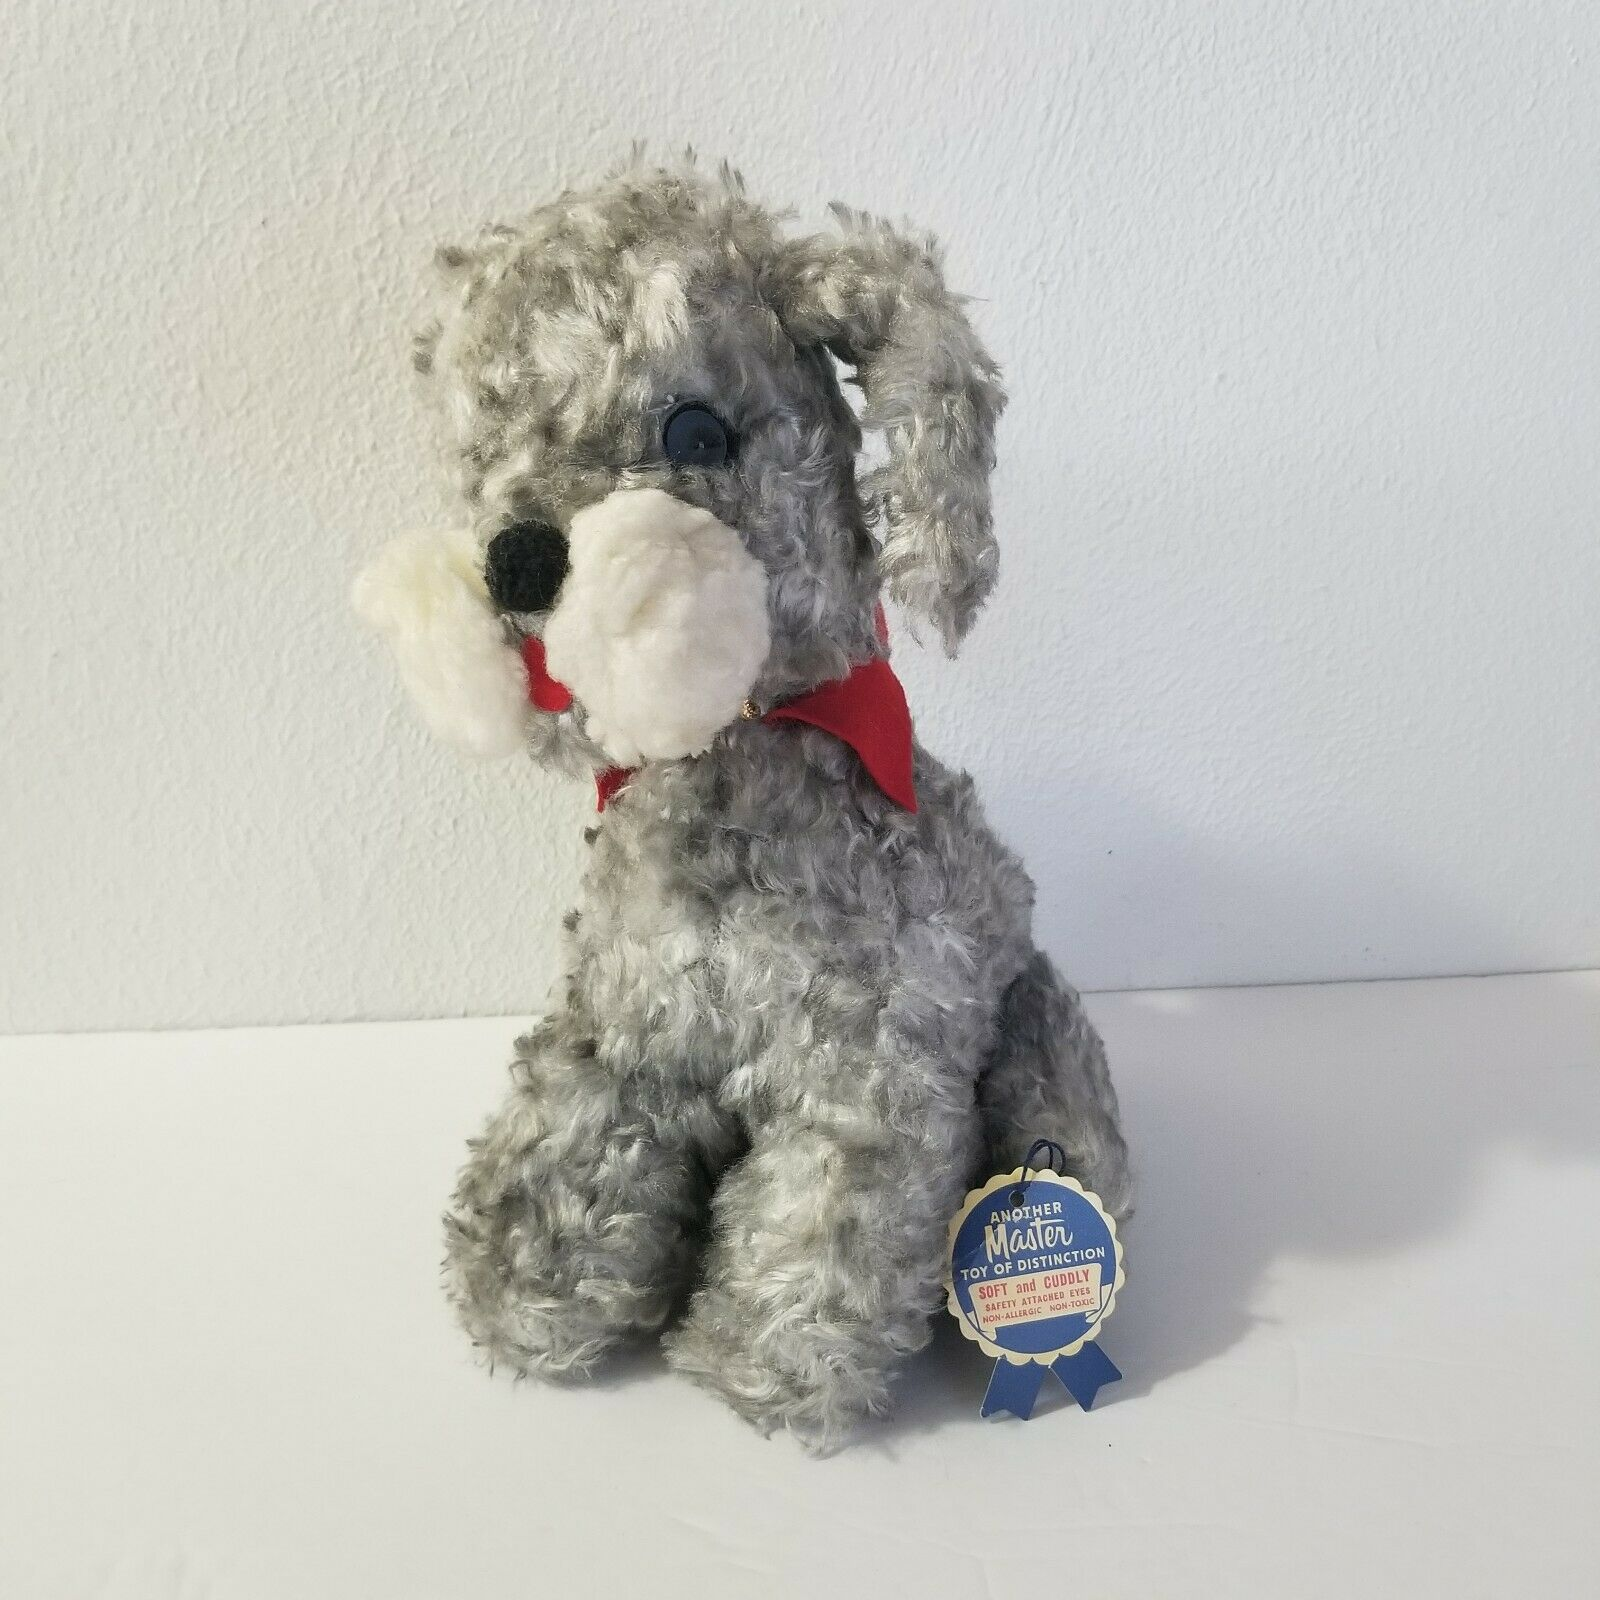 PE14 Vtg MASTER INDUSTRIES Terrier  1950s Stuffed Plush Dog Toy with TAG 11